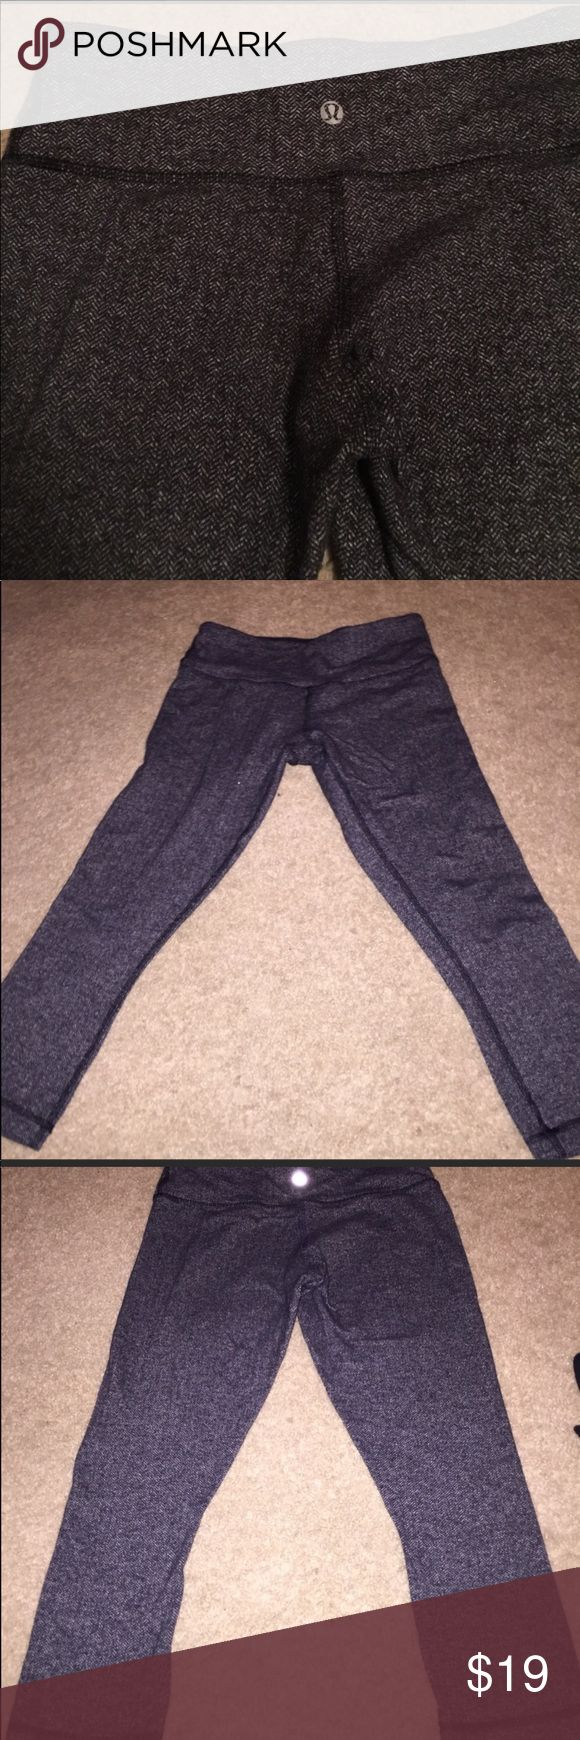 Lu lu lemon pants. Good condition,  no flaws Sold but sent back to me because they didn't fit. Let's try this again :) lululemon athletica Pants Leggings